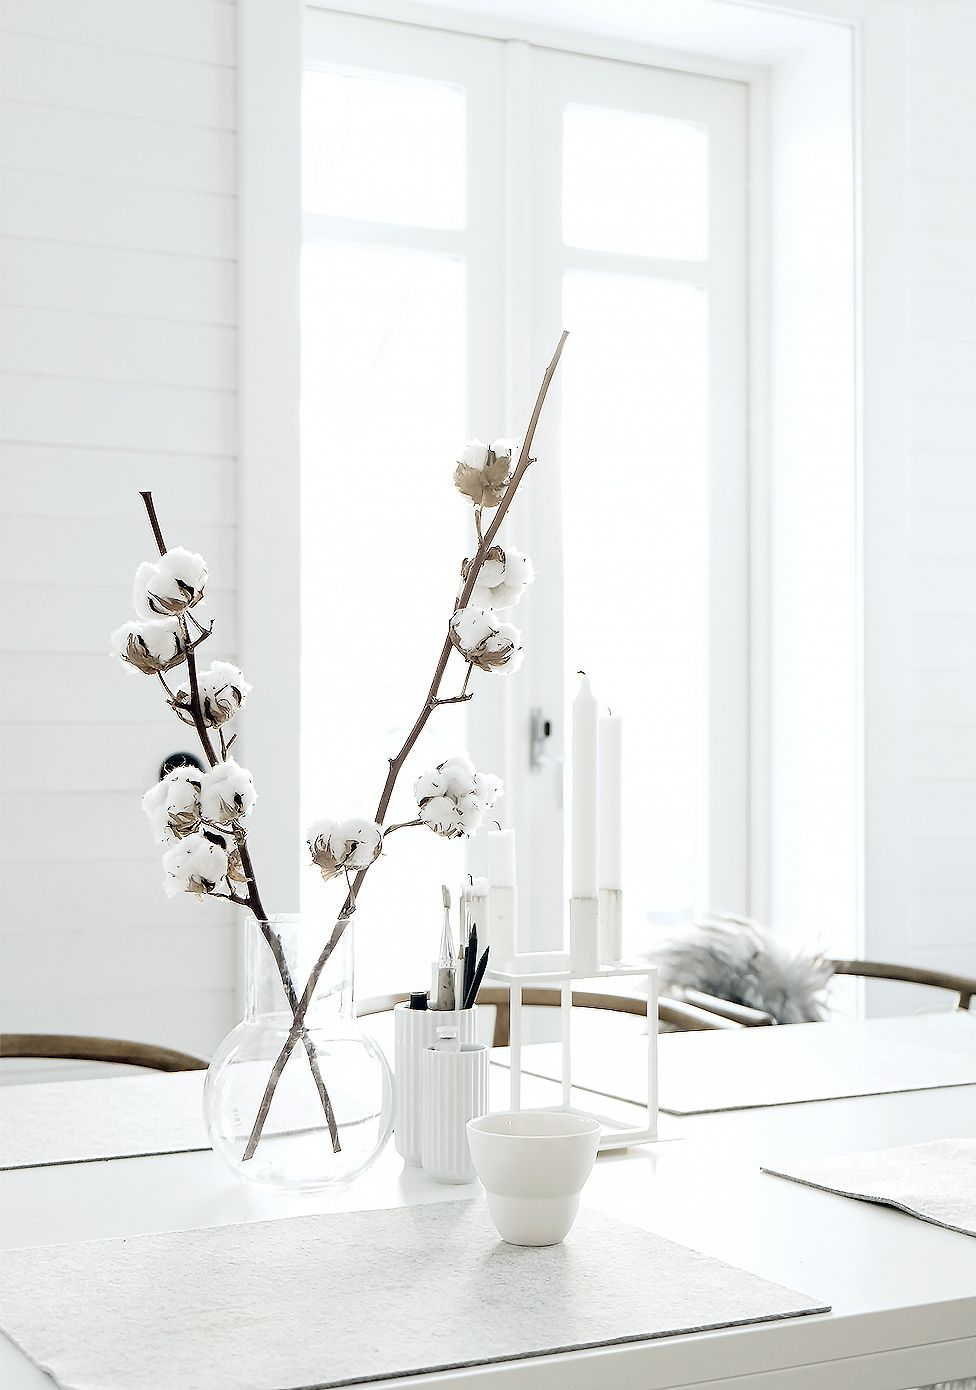 white dog #dog Modern simplicity. White cotton blooms and nondescript vases brighten up a classic all-white decor scheme.